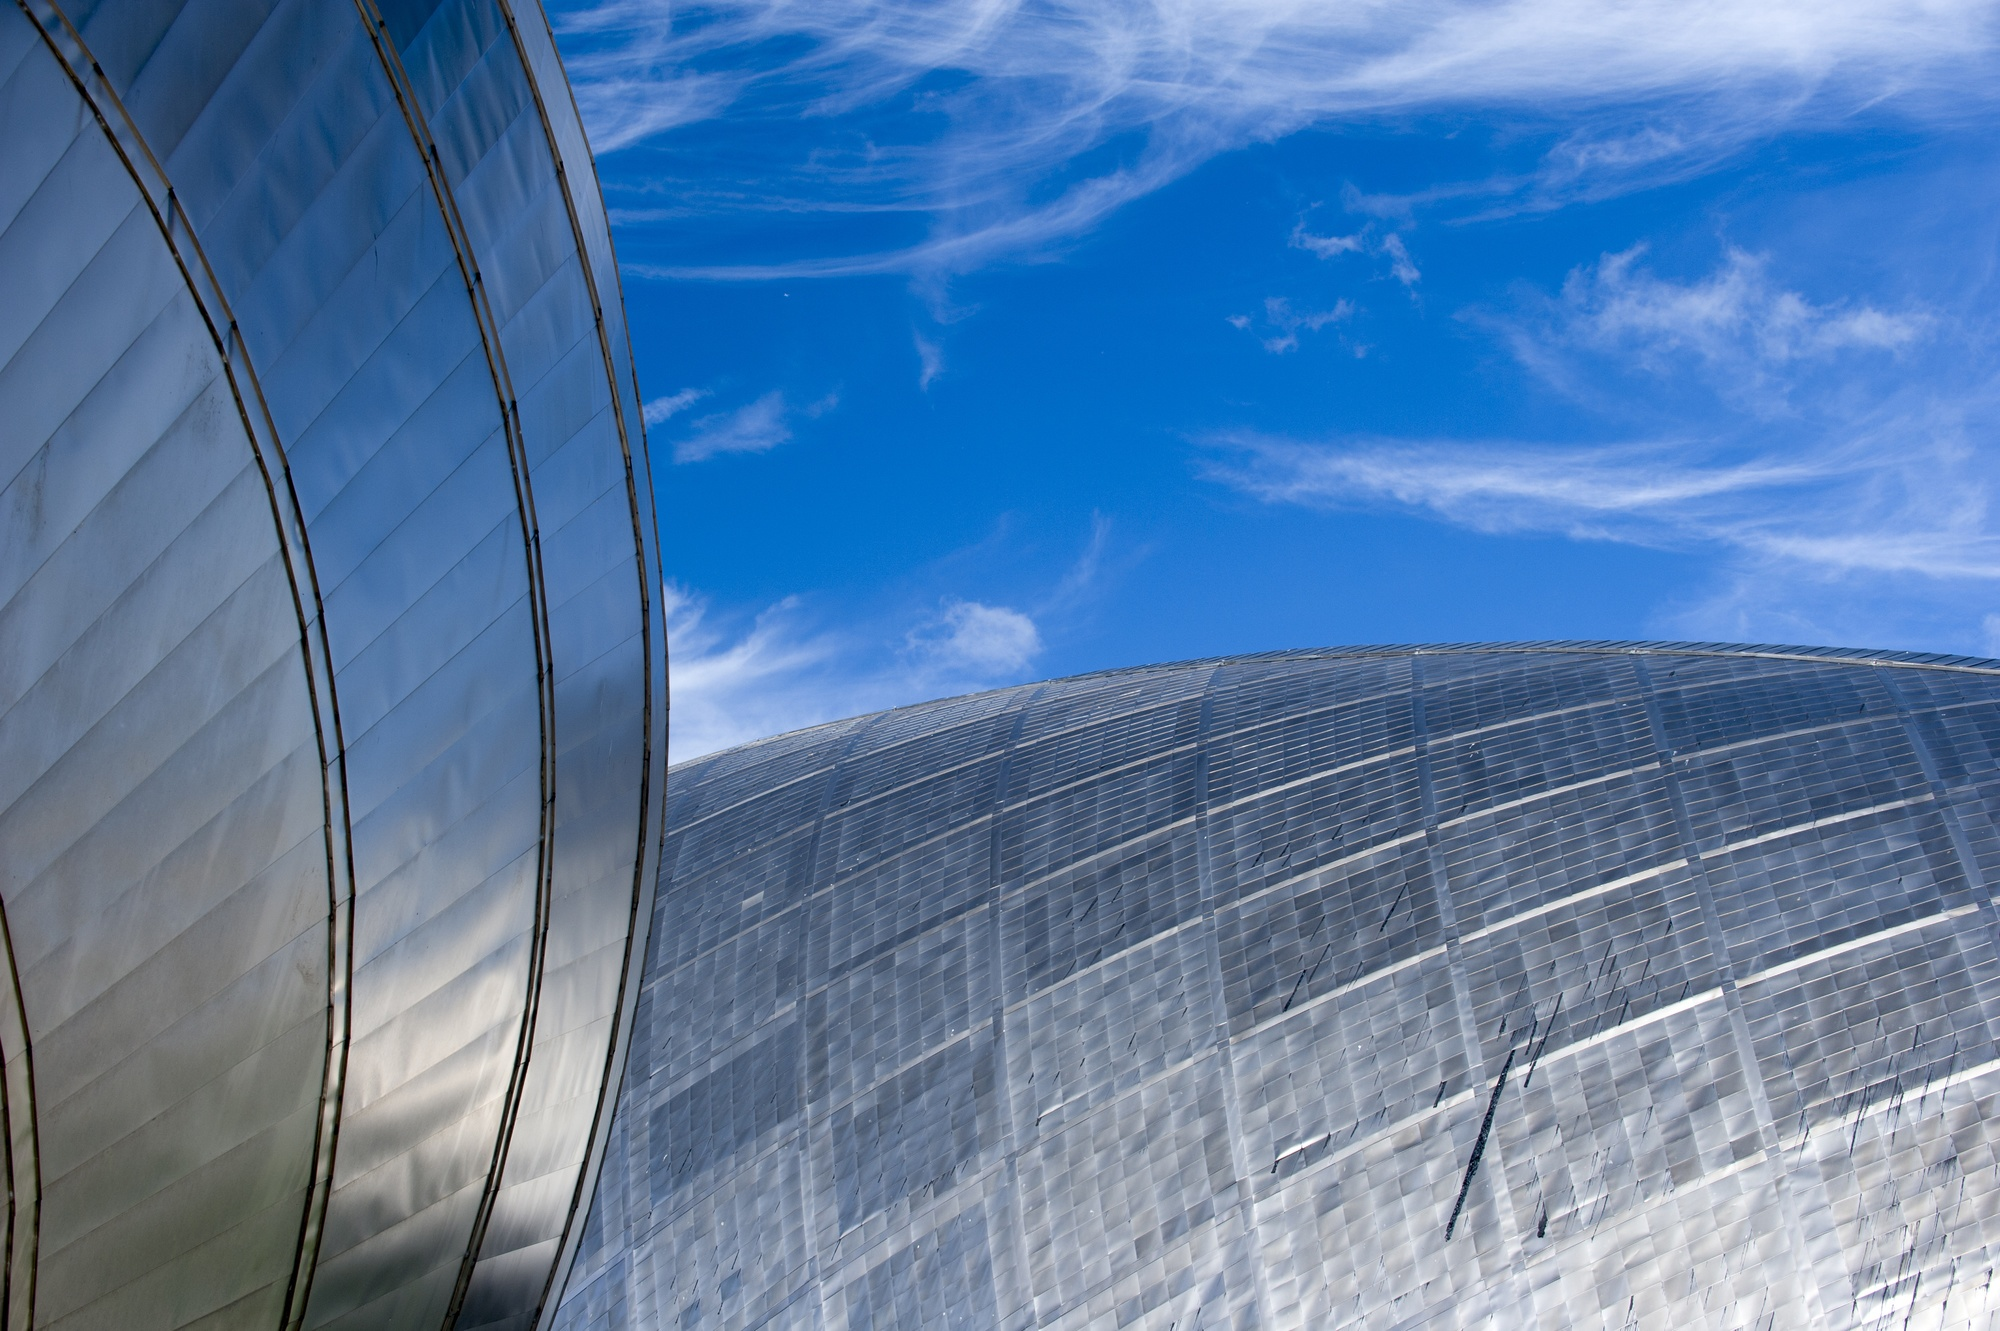 The IMAX and Glasgow Science Centre exterior